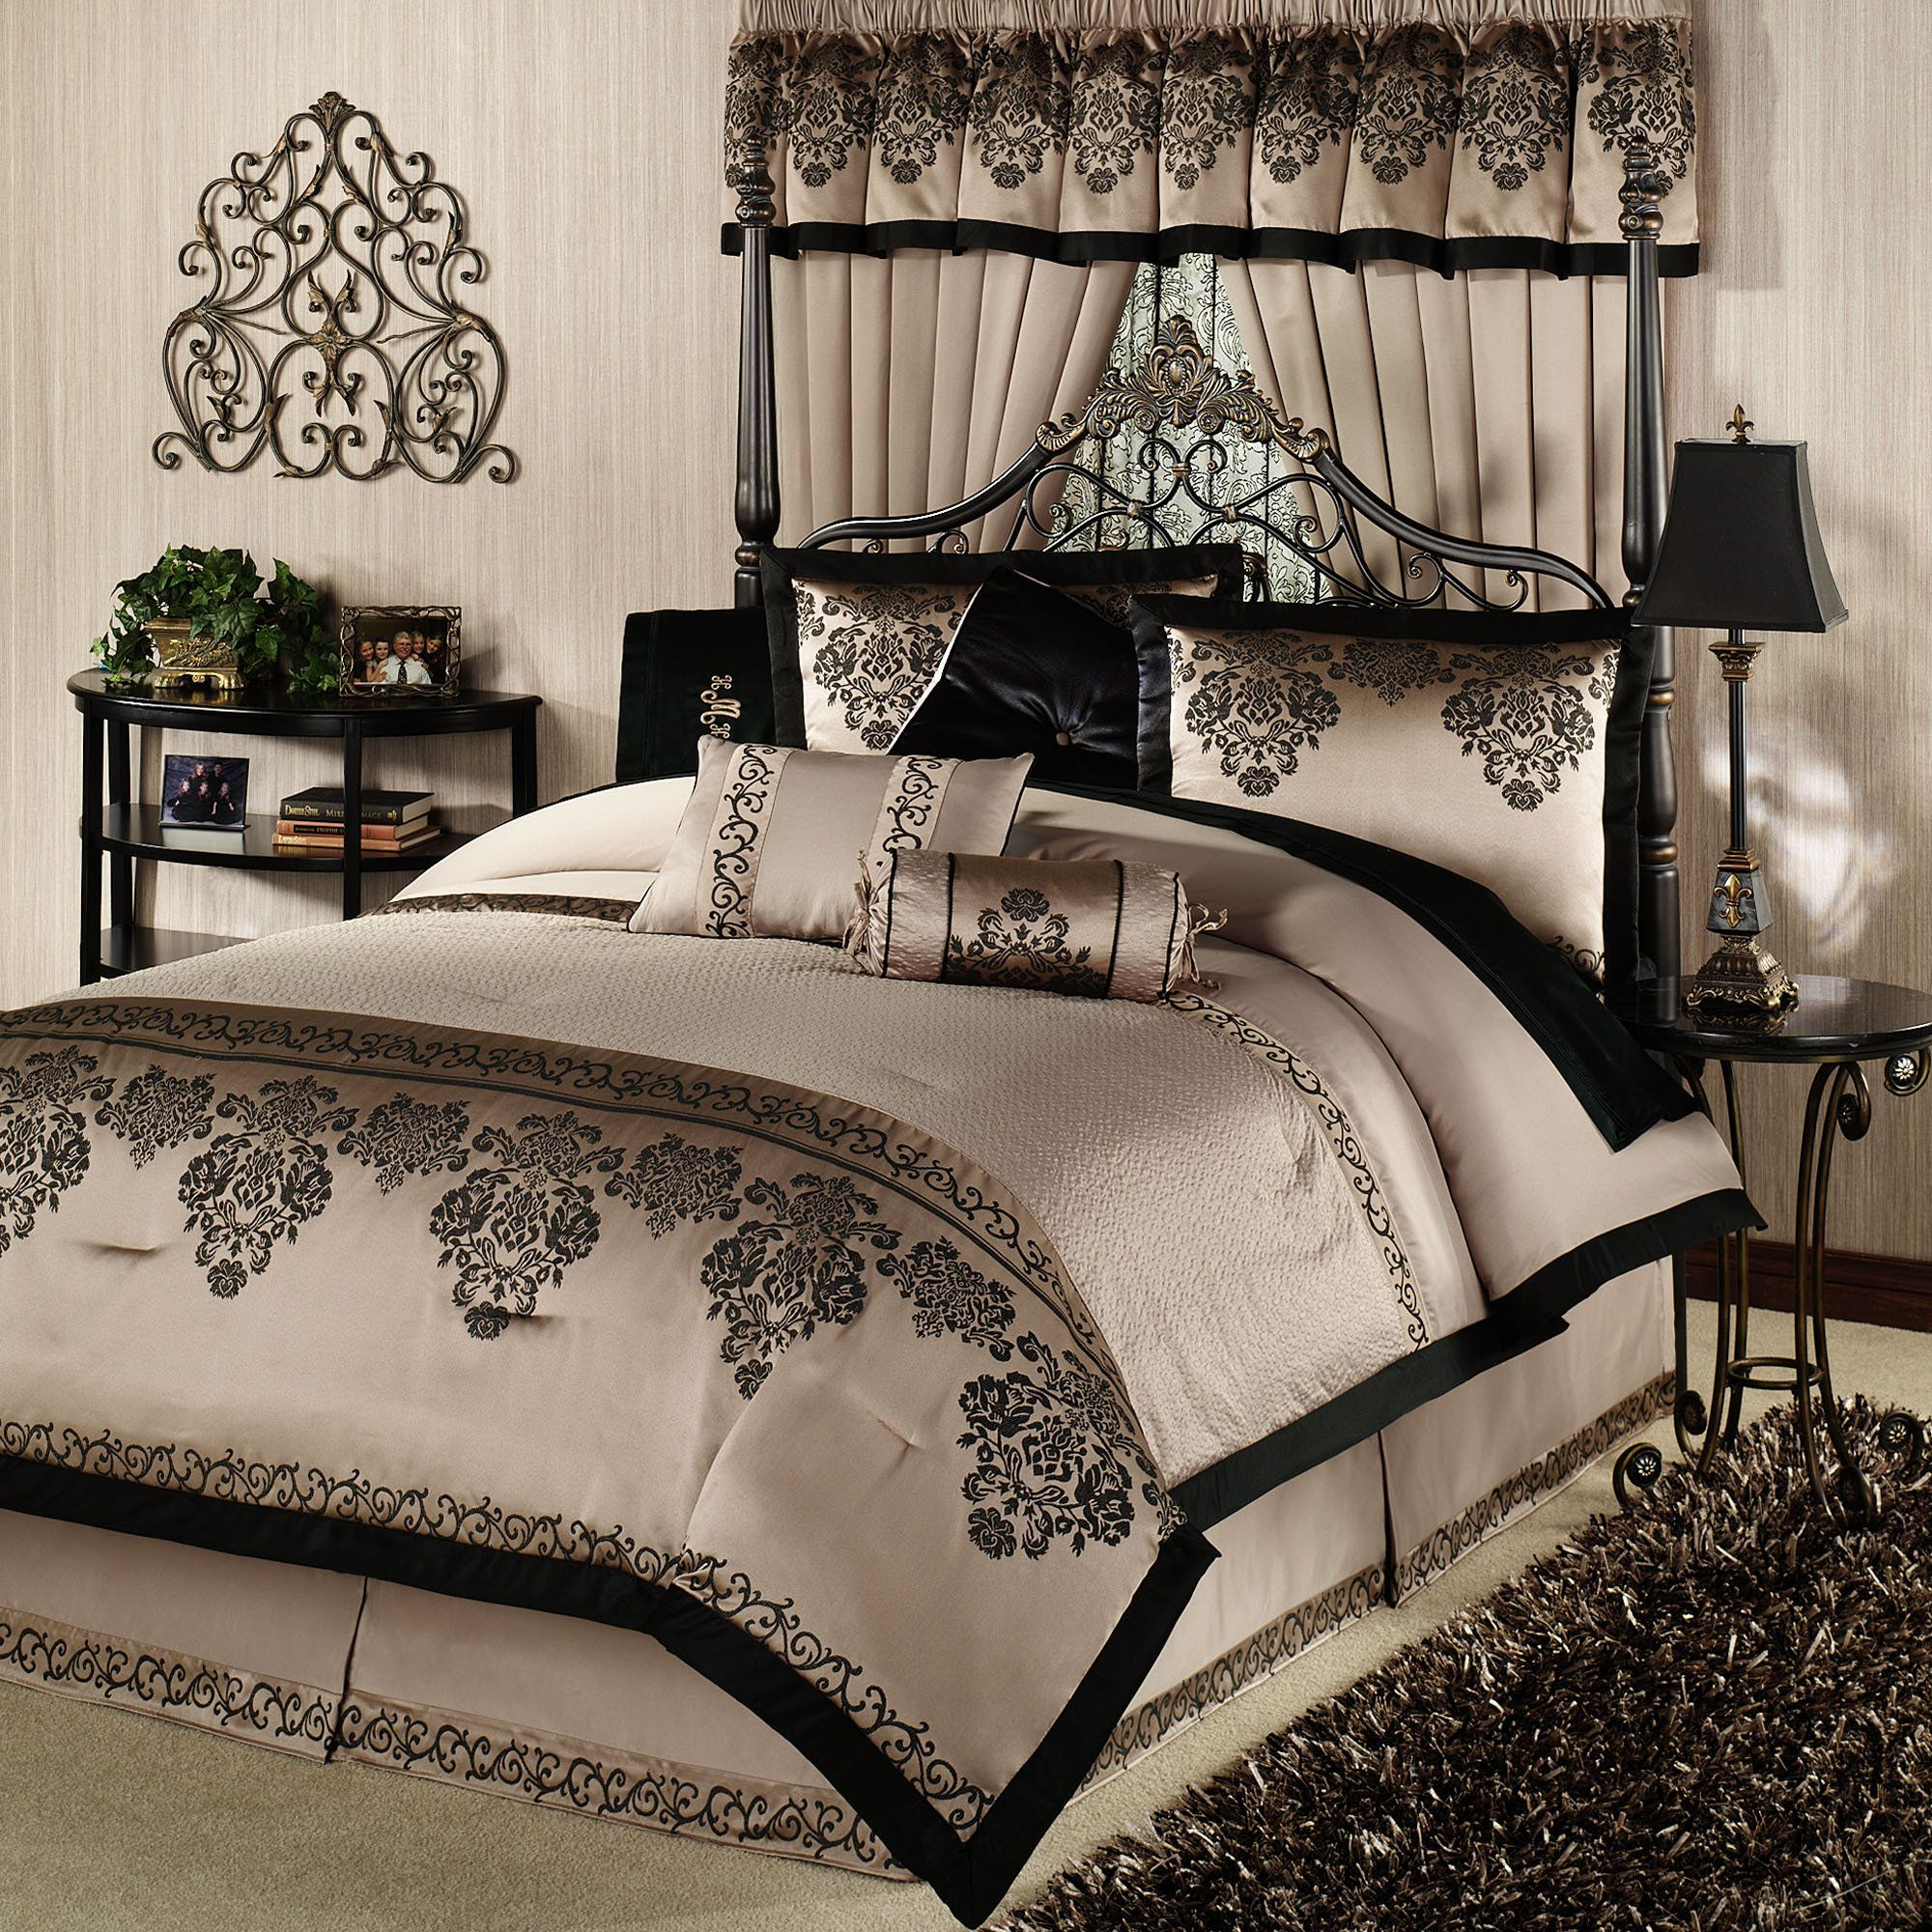 King Size Bed Size King Size Bed Comforters Sets Overview Details Sizes